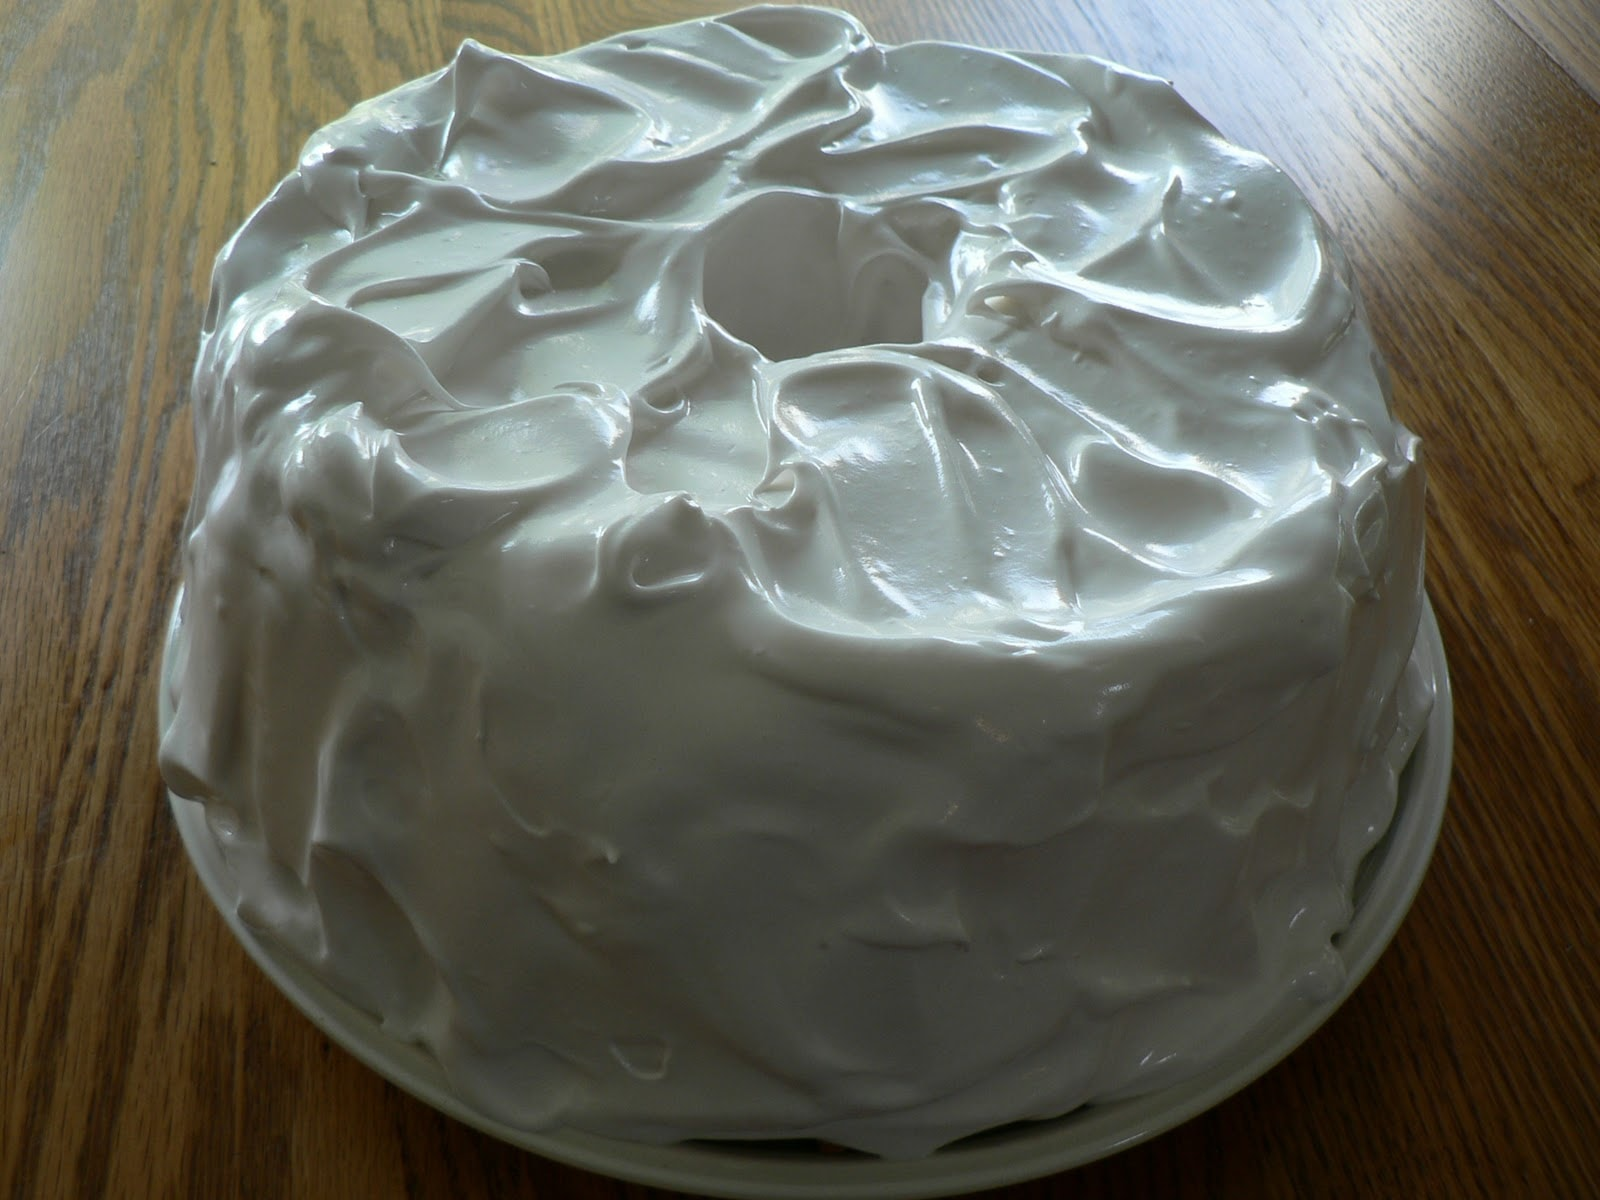 Vanilla Icing For Angel Food Cake